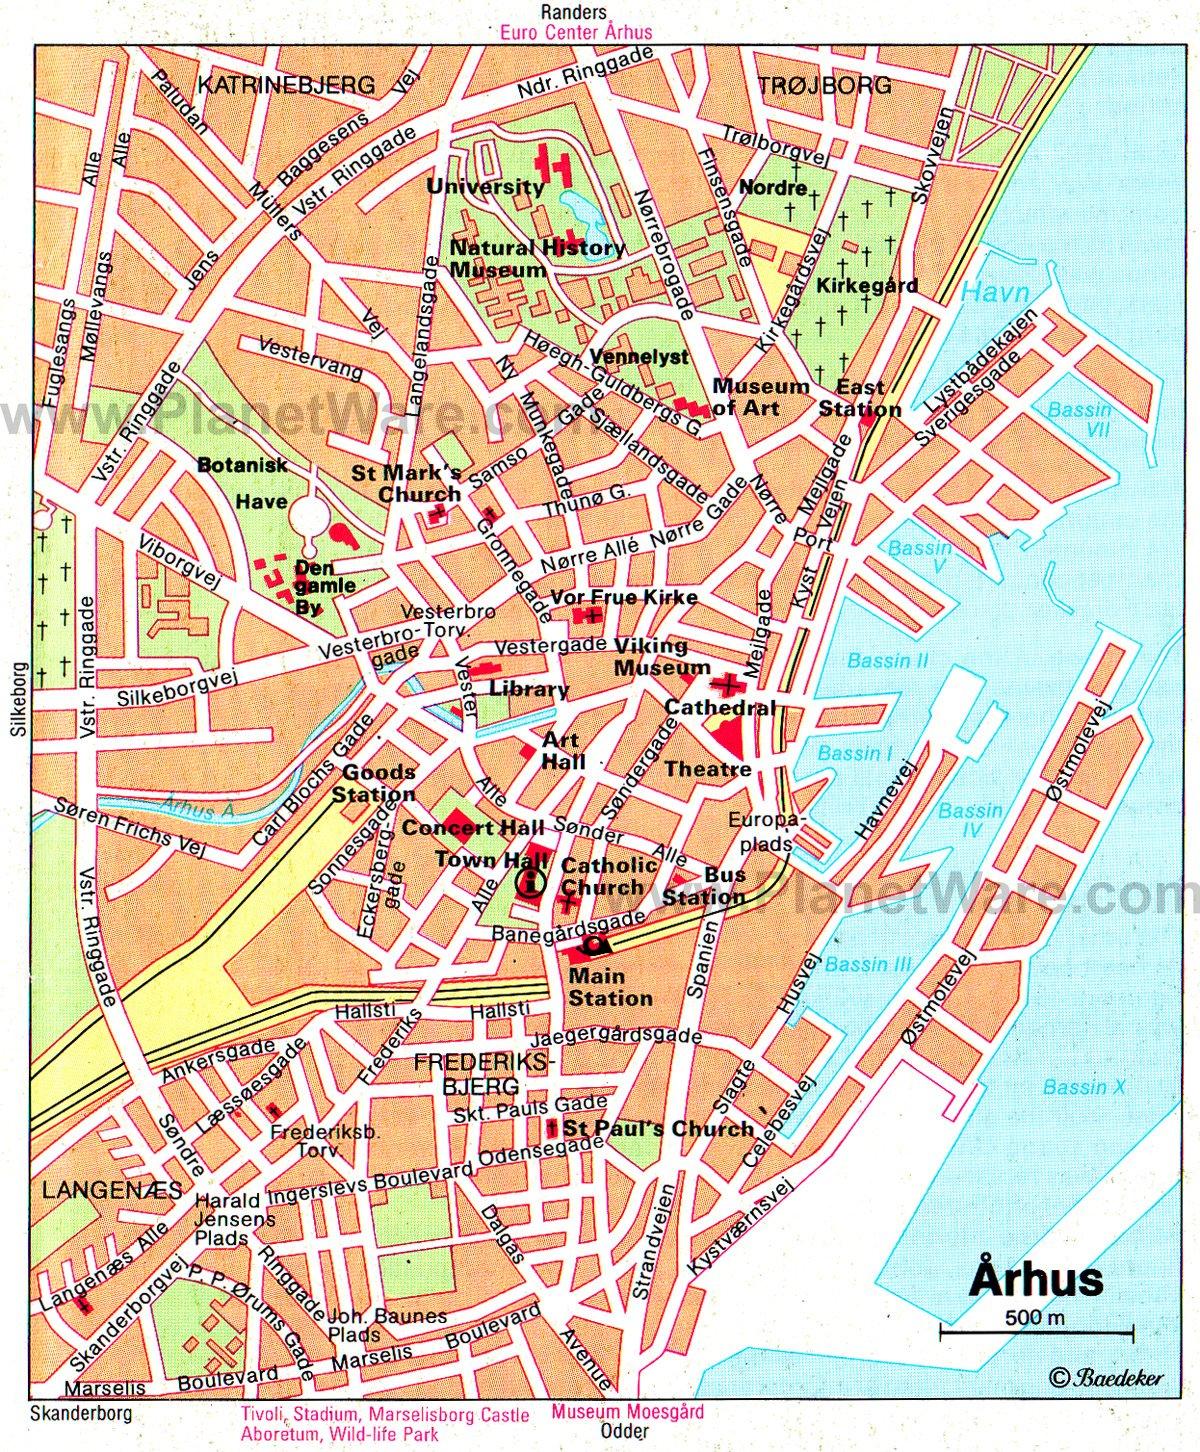 10 Top Tourist Attractions in Aarhus and Easy Day Trips – Copenhagen Tourist Attractions Map